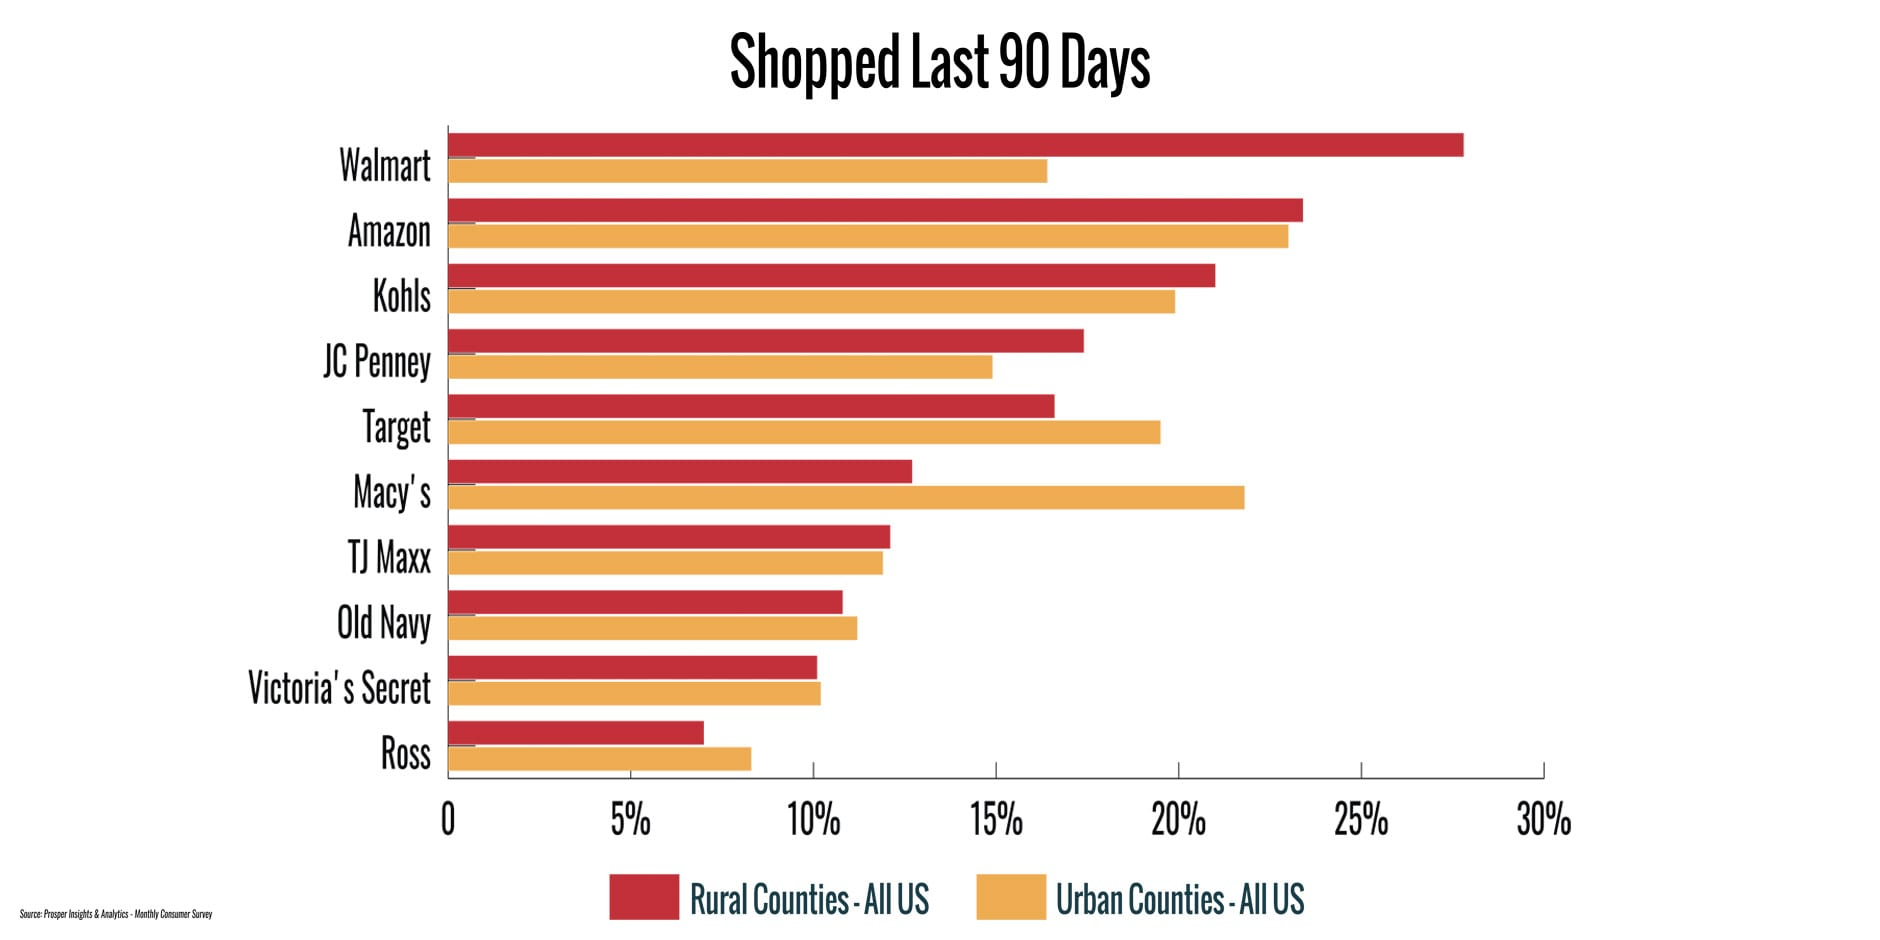 Apparel Shopping and the Rural Consumer in 2018 - Mspark